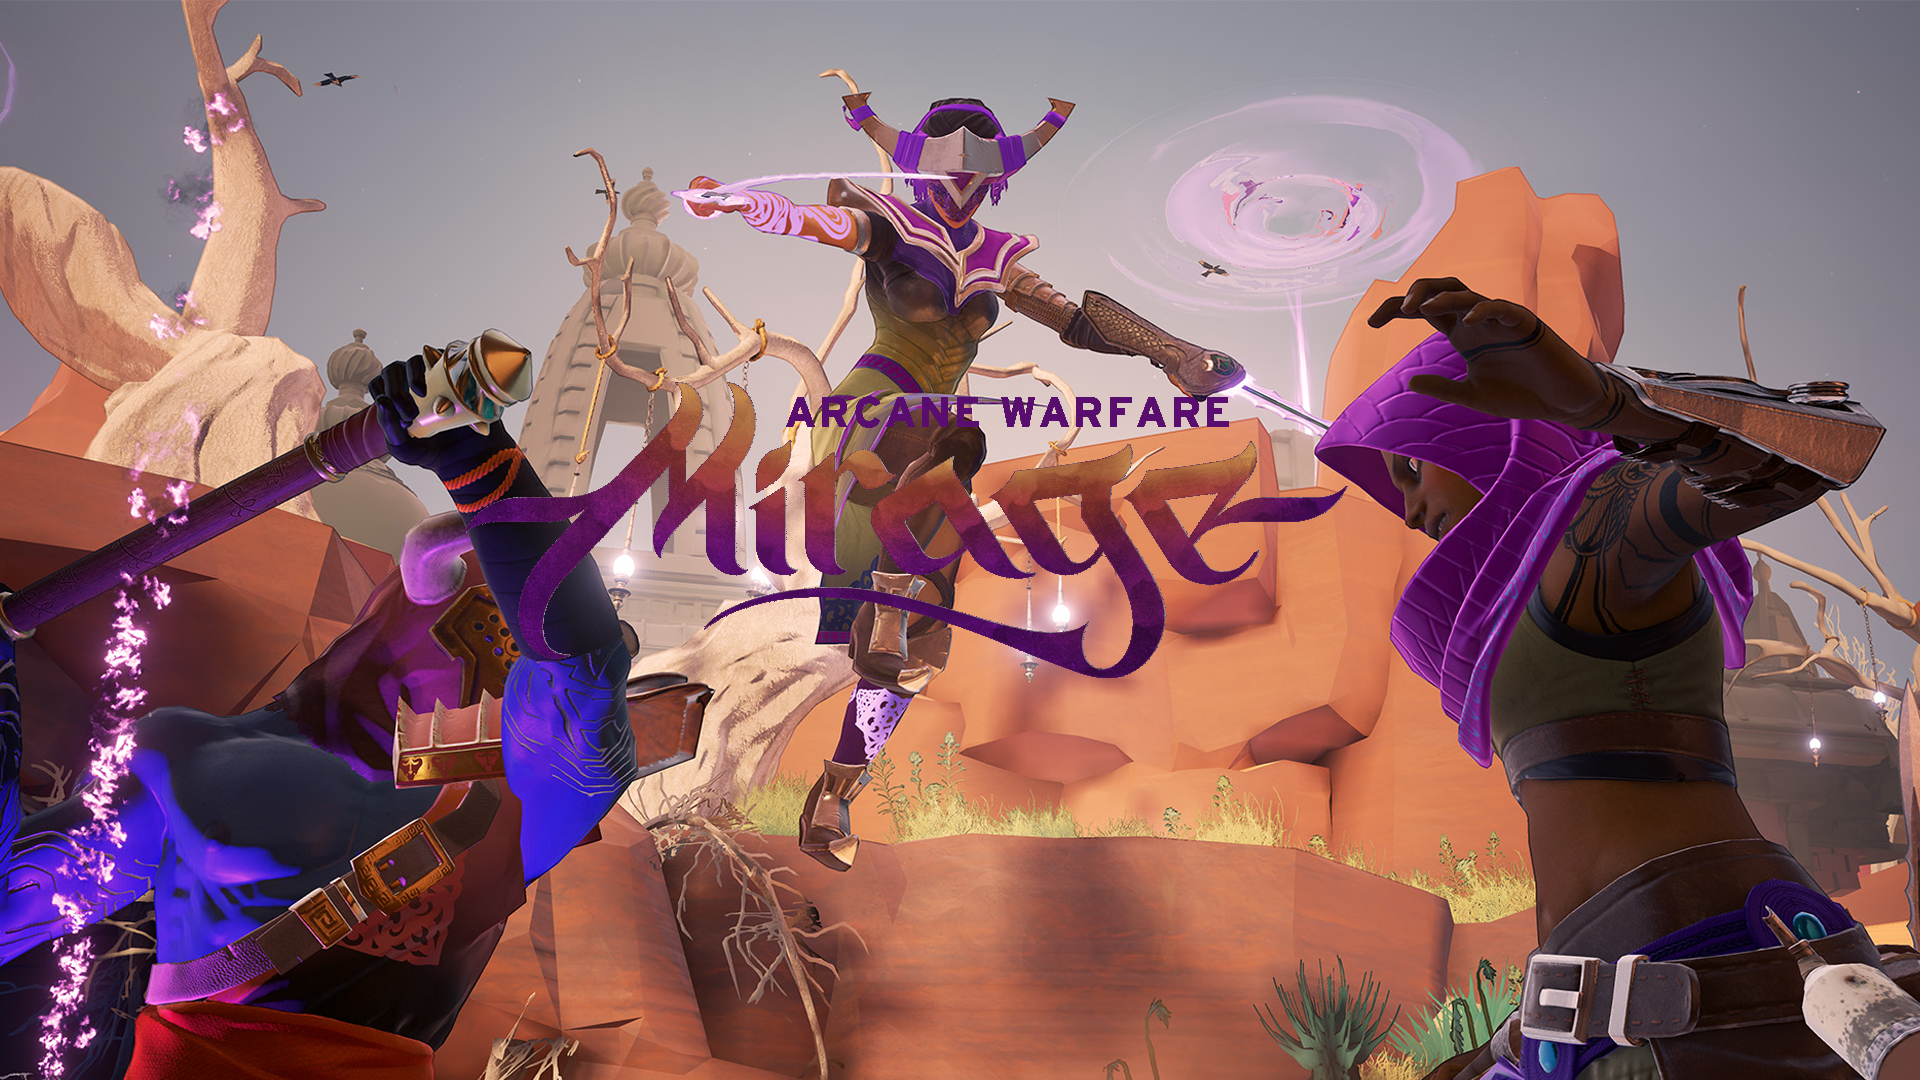 Mirage Arcane Warfare Release Cover